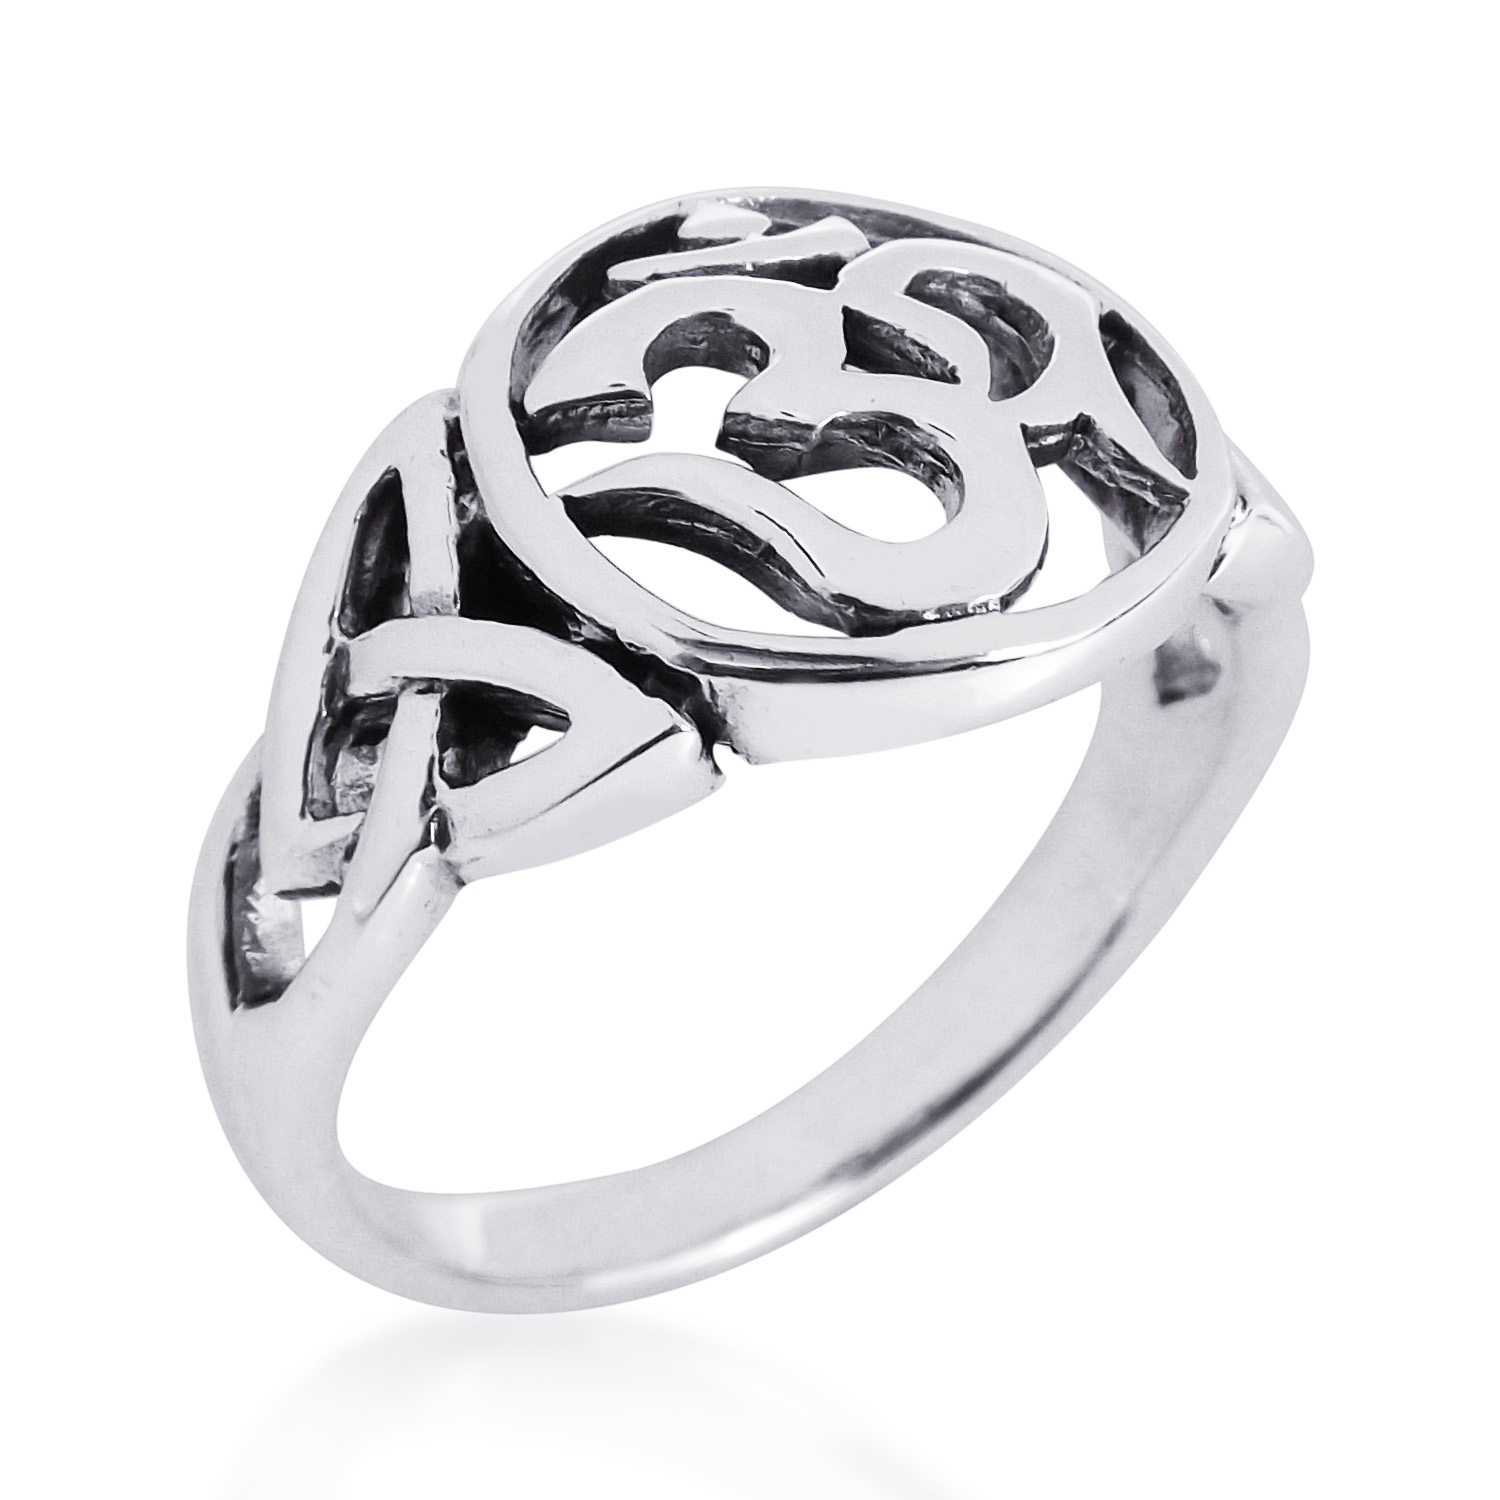 8ed83044541c8 Details about Unique Triquetra Ohm Symbol .925 Sterling Silver Ring-9